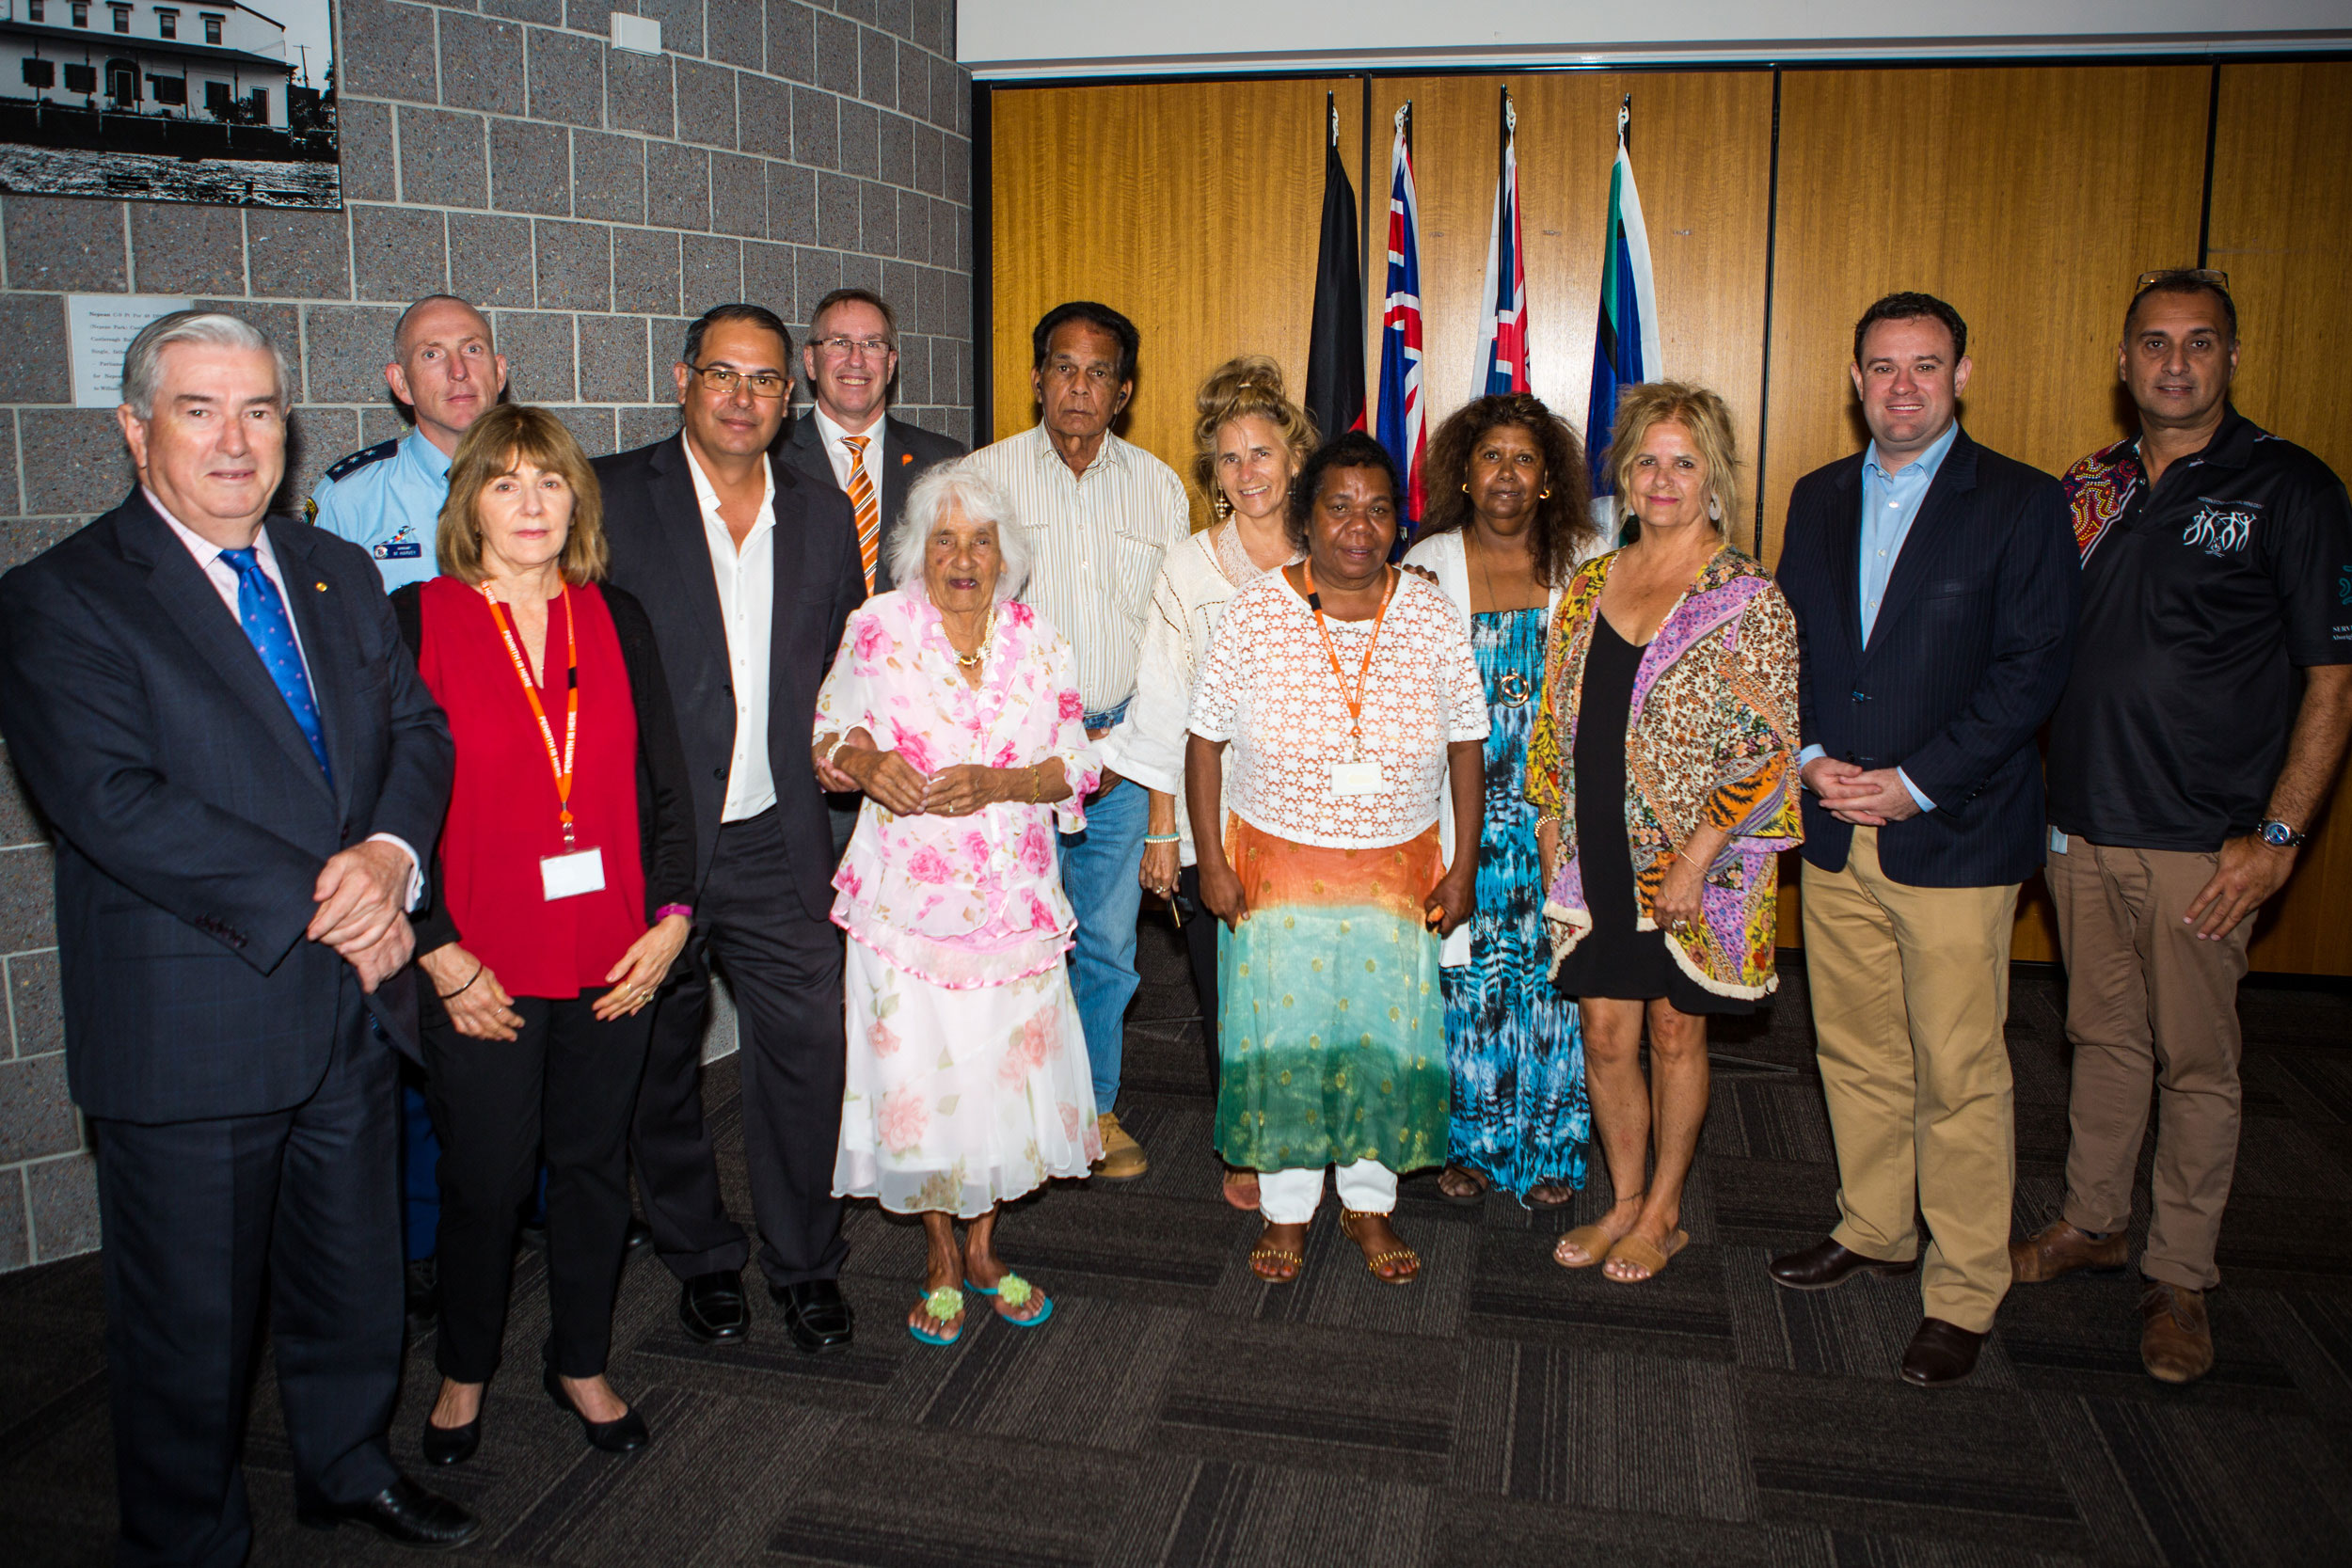 From left to right:(left to right): Penrith Mayor Ross Fowler OAM (front left) pictured with guest speaker and Link-Up CEO Terry Chenery (fourth from left), Aboriginal special guests and invited guests for Penrith Council's National Apology Day ceremony. Penrith Mayor Ross Fowler OAM (front left) pictured with guest speaker and Link-Up CEO Terry Chenery (fourth from left), Aboriginal special guests and invited guests for Penrith Council's National Apology Day ceremony.